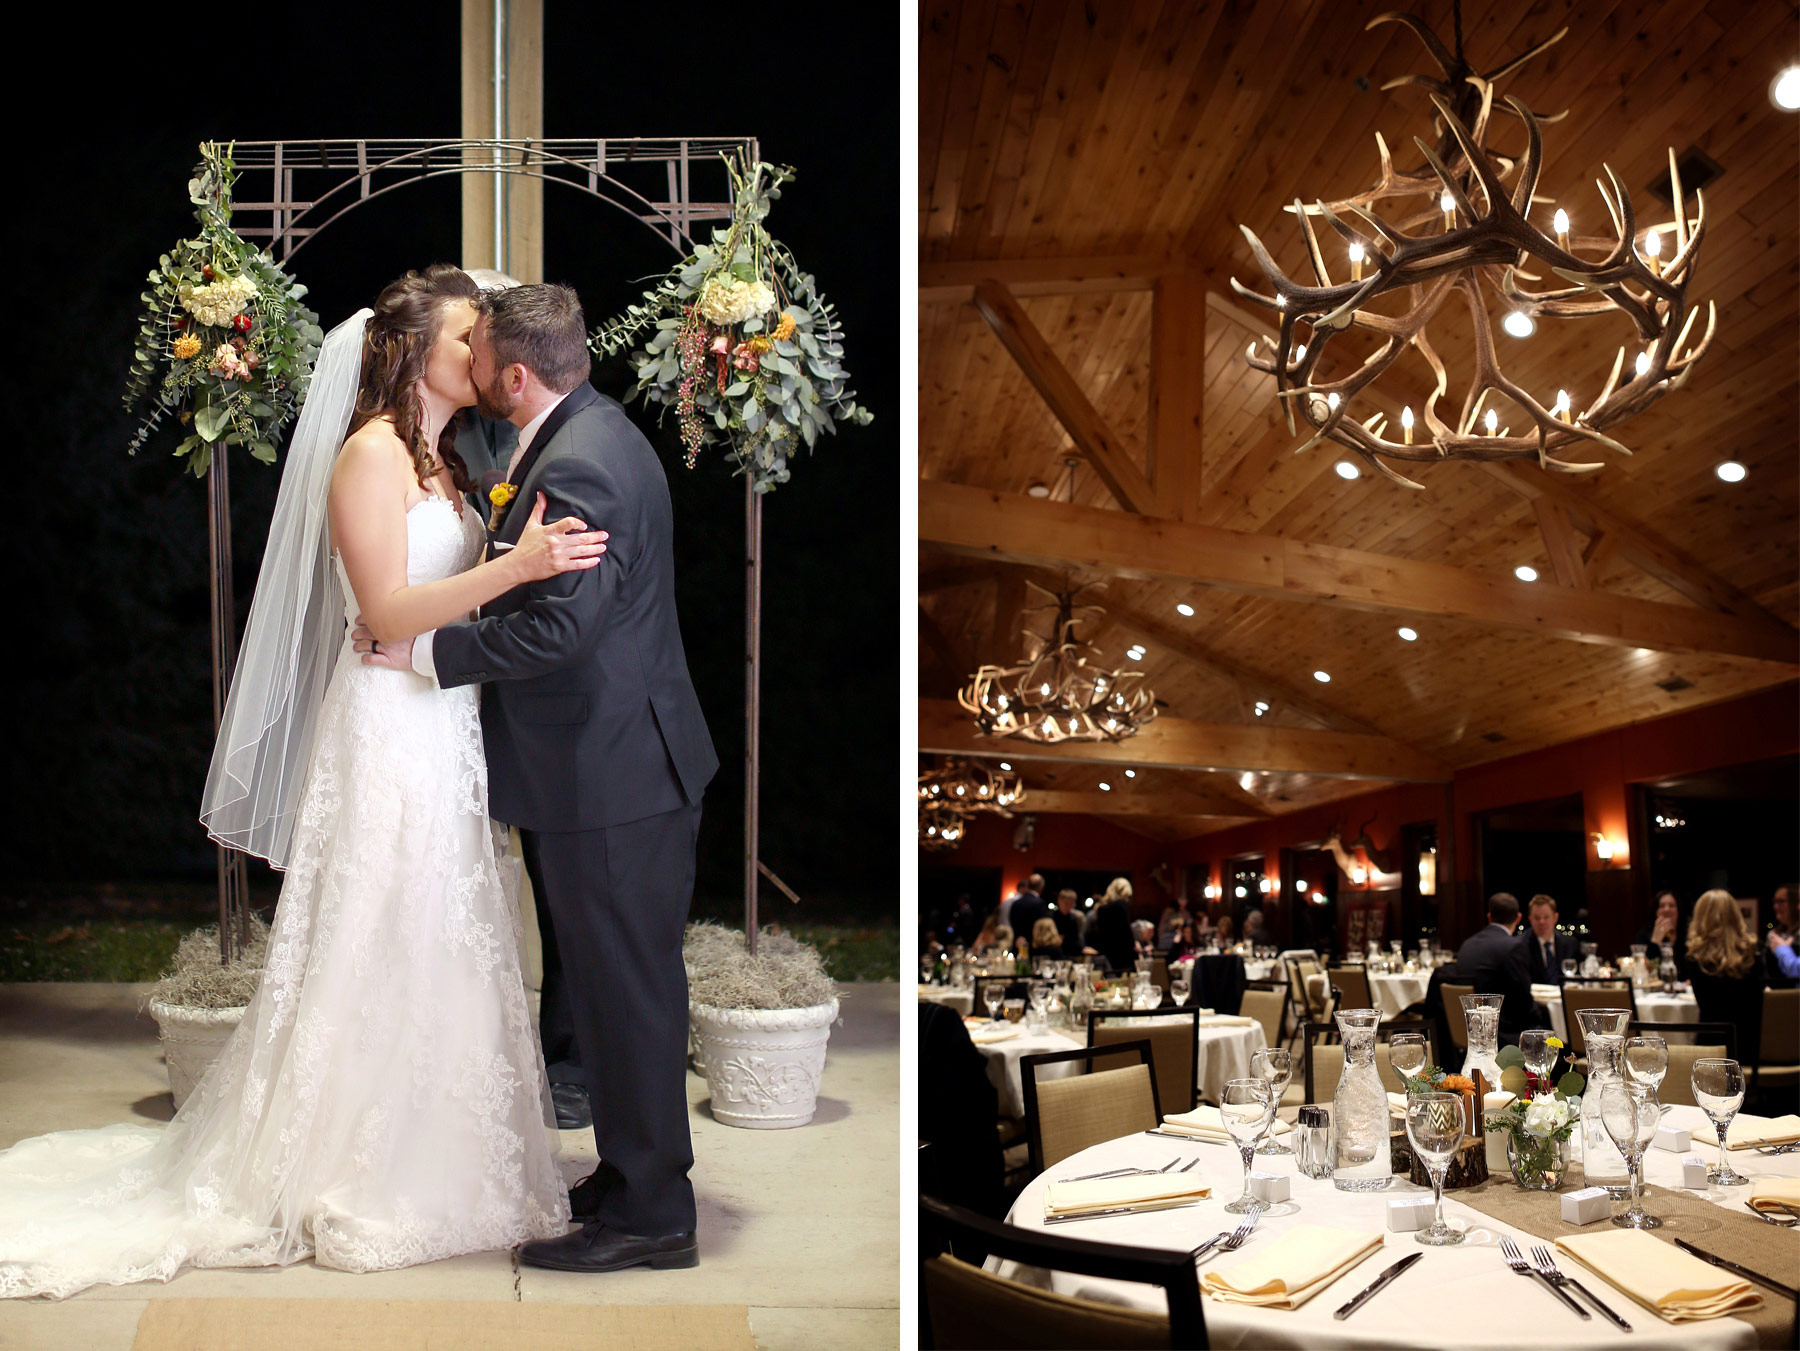 12-Minneapolis-Minnesota-Wedding-Photography-by-Vick-Photography-Prior-Lake-Horse-and-Hunt-Club-Rustic-Ceremony-Reception-Night-Sarah-and-Steve.jpg